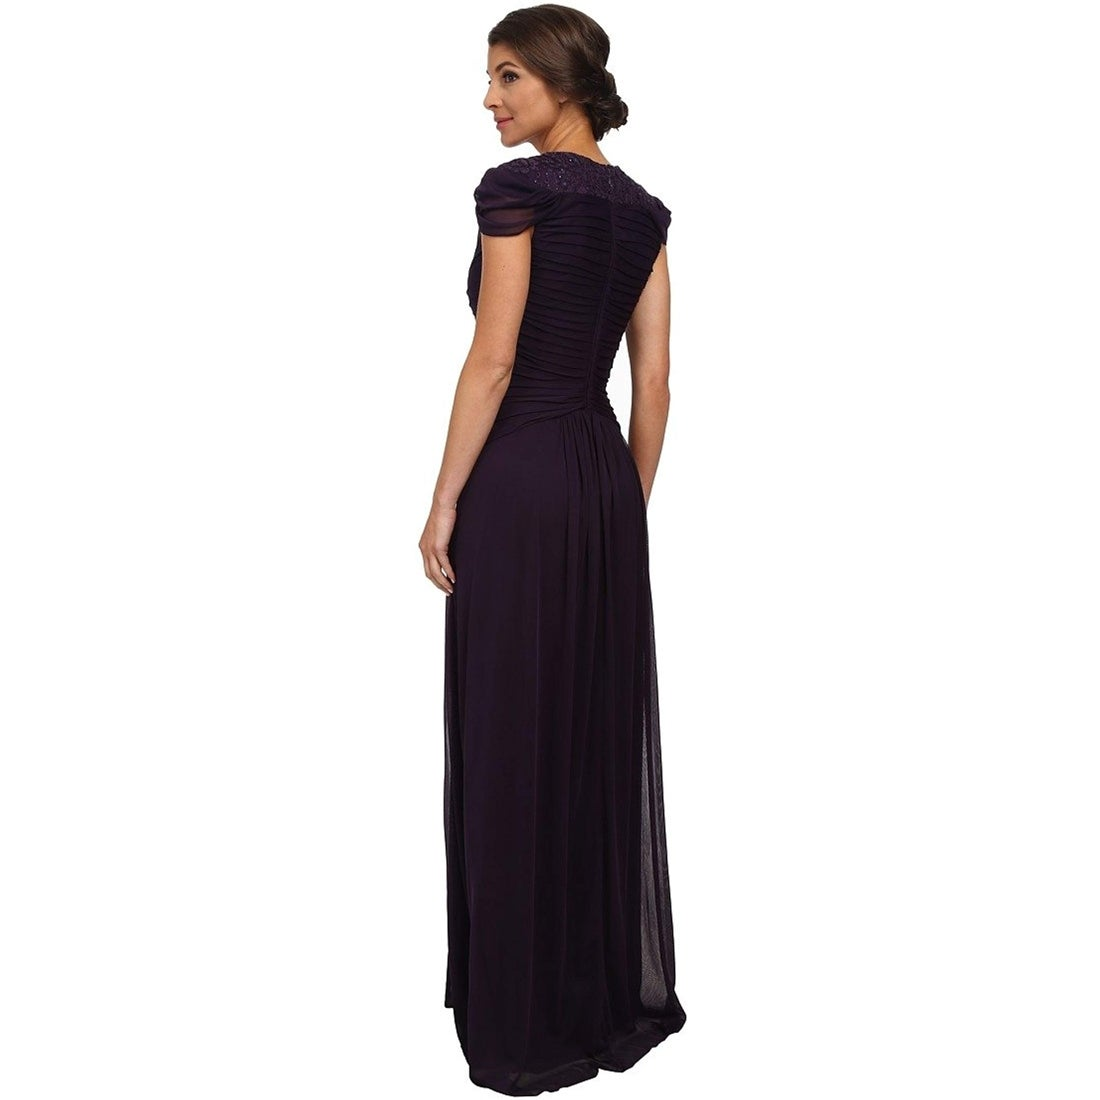 Adrianna Papell Womens Strapless Tulle Petal Party Dress